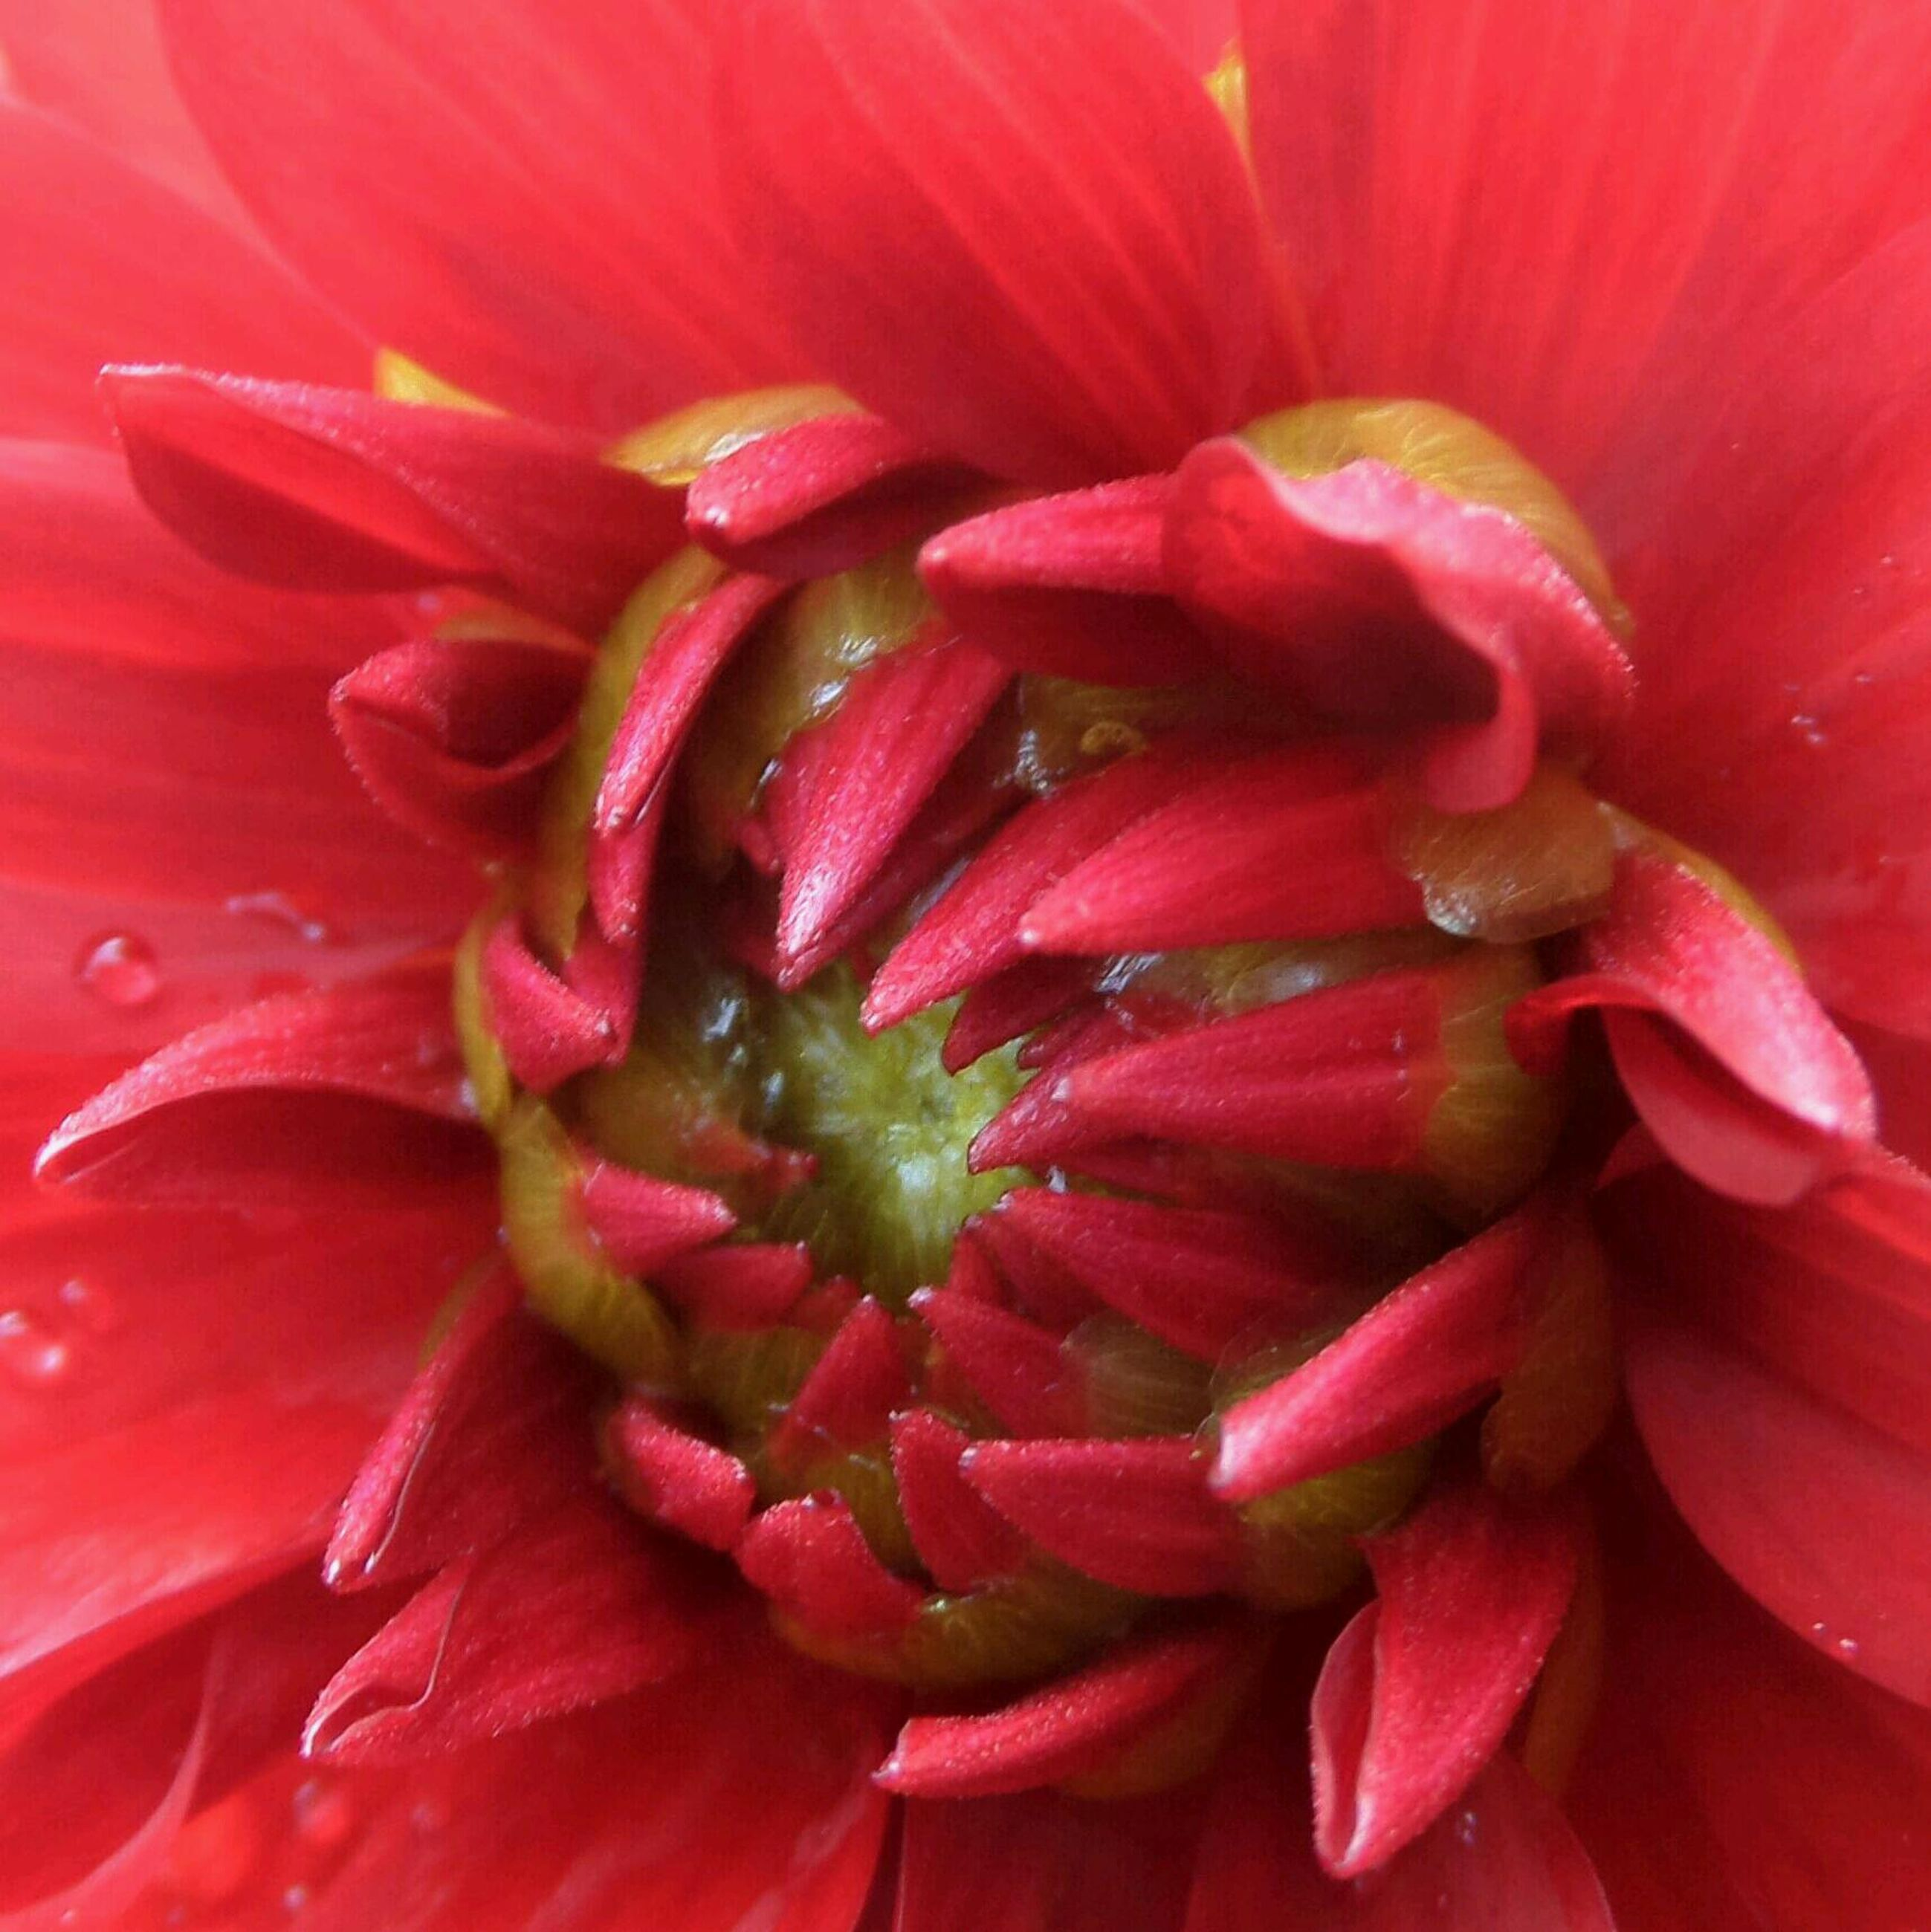 flower, freshness, petal, flower head, fragility, beauty in nature, growth, red, full frame, backgrounds, close-up, nature, single flower, blooming, pollen, macro, drop, in bloom, extreme close-up, stamen